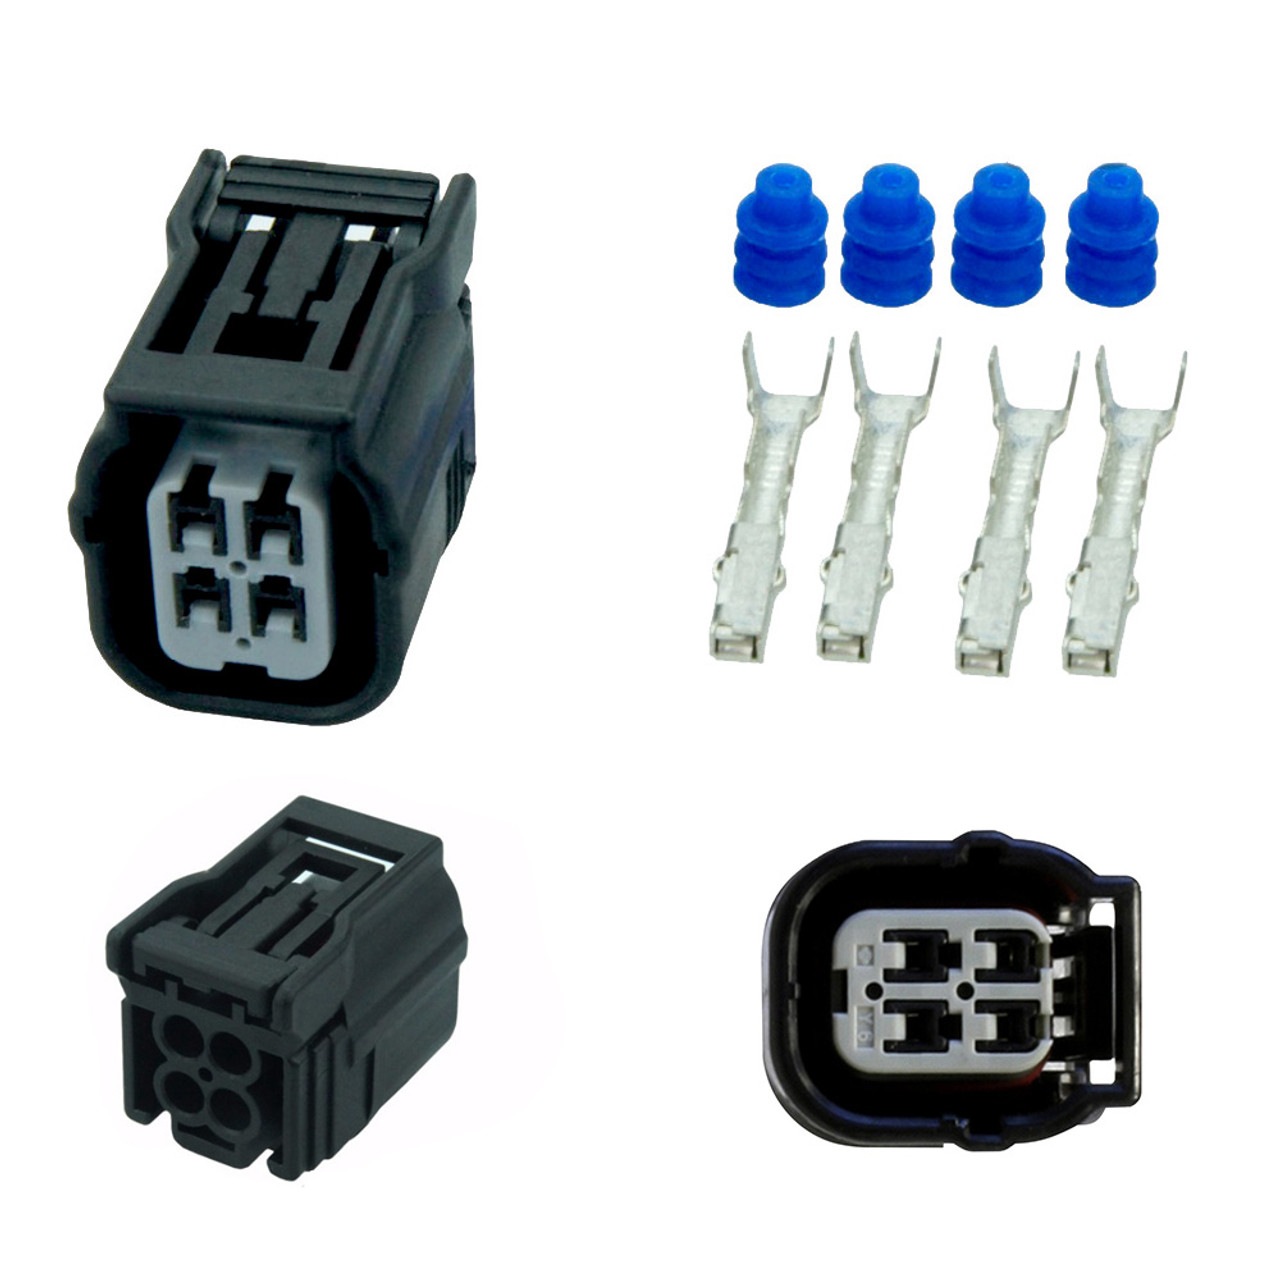 small resolution of 4 wire o2 oxygen sensor female connector harness kit for honda accord civic cr v